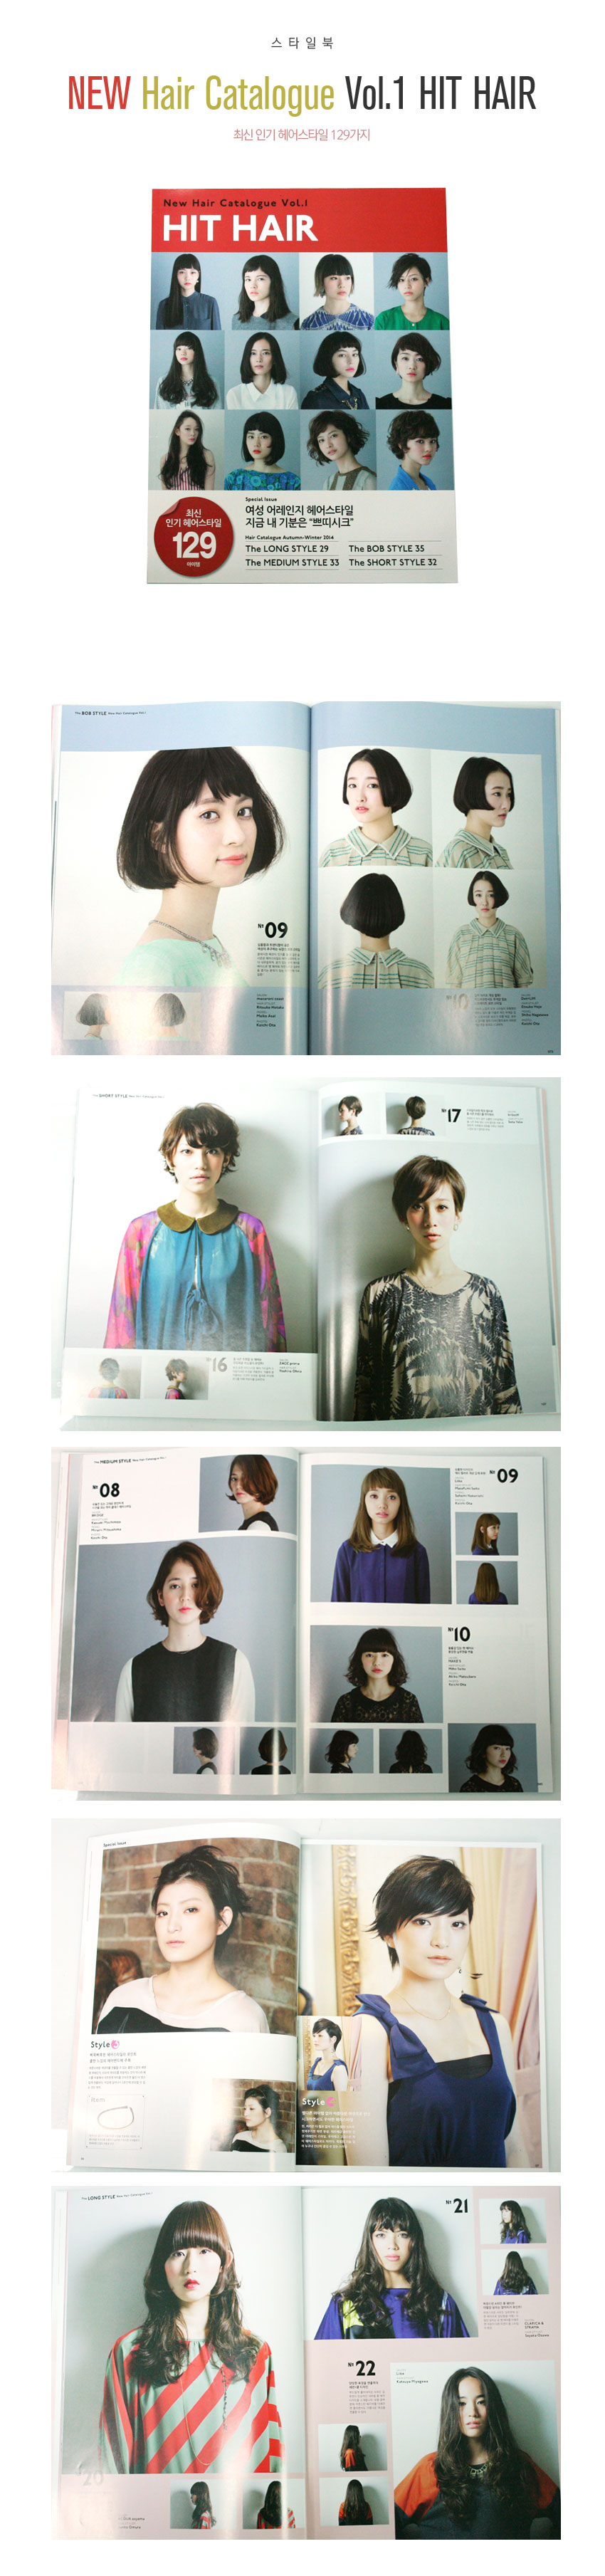 NEW Hair Catalogue Vol.1 HIT HAIR